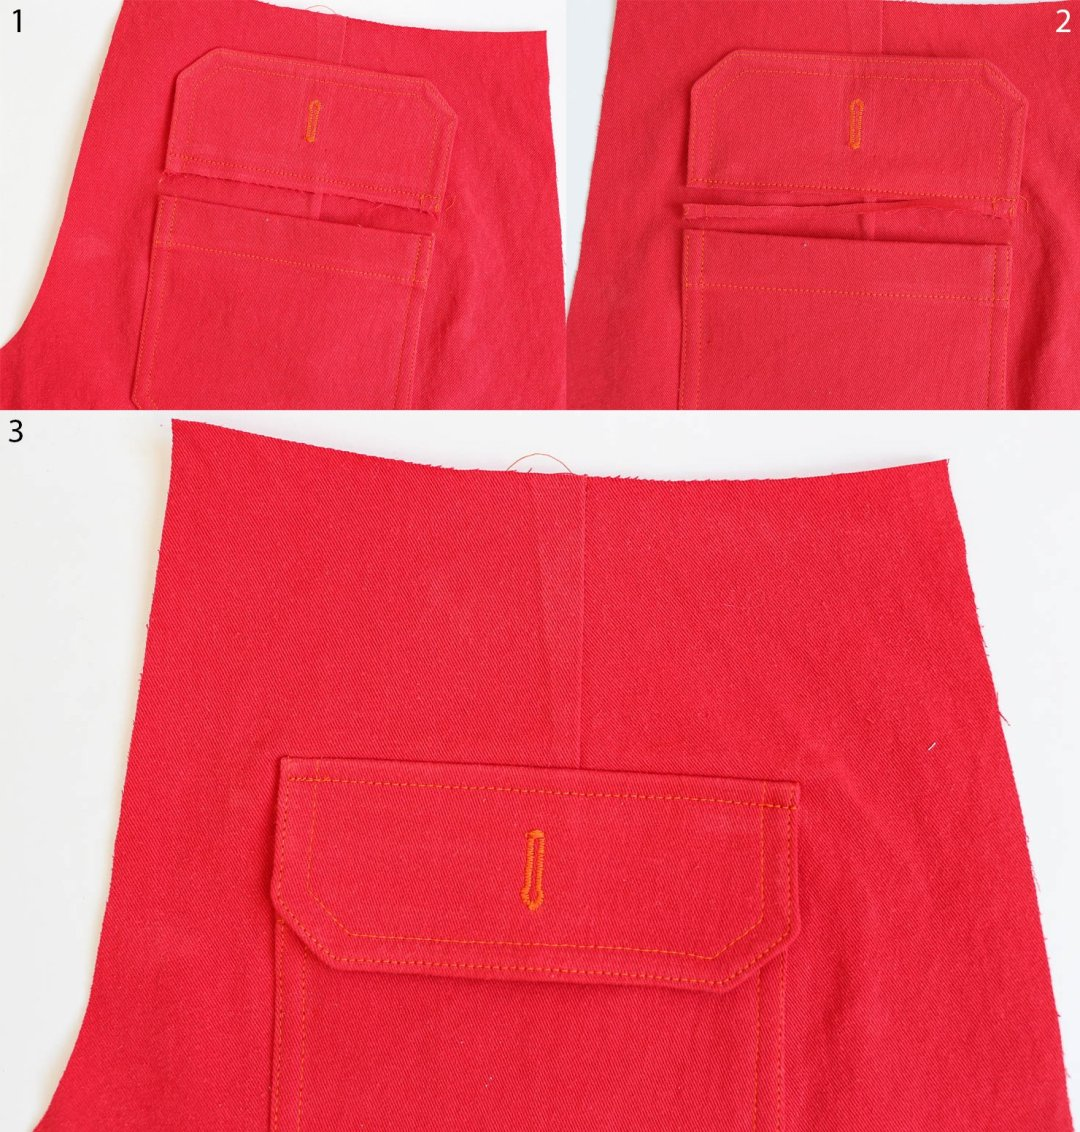 Chi-Town Chinos-Attaching Pocket Flaps